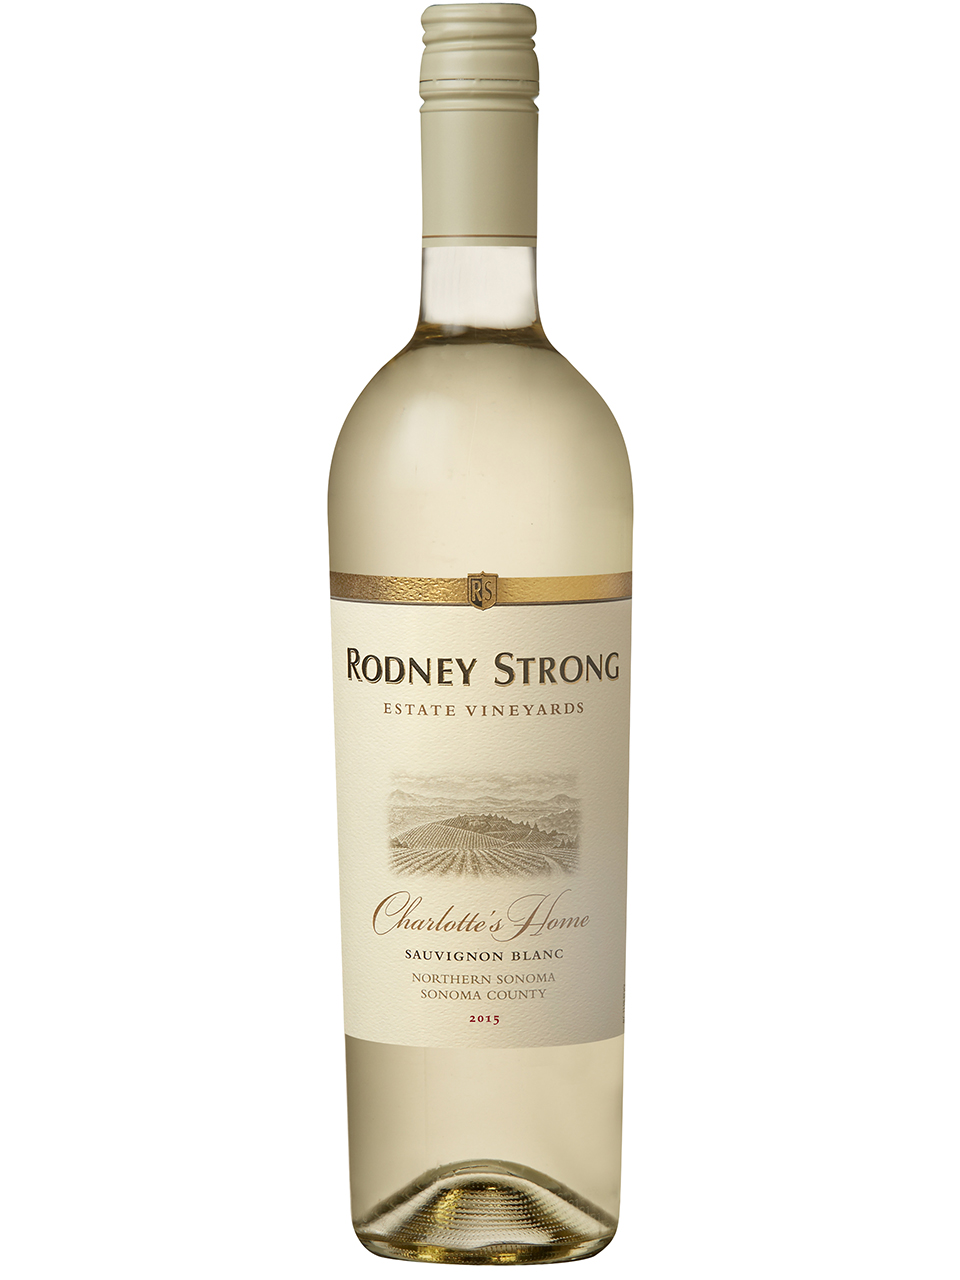 Rodney Strong Charlottes Home Sauvignon Blanc